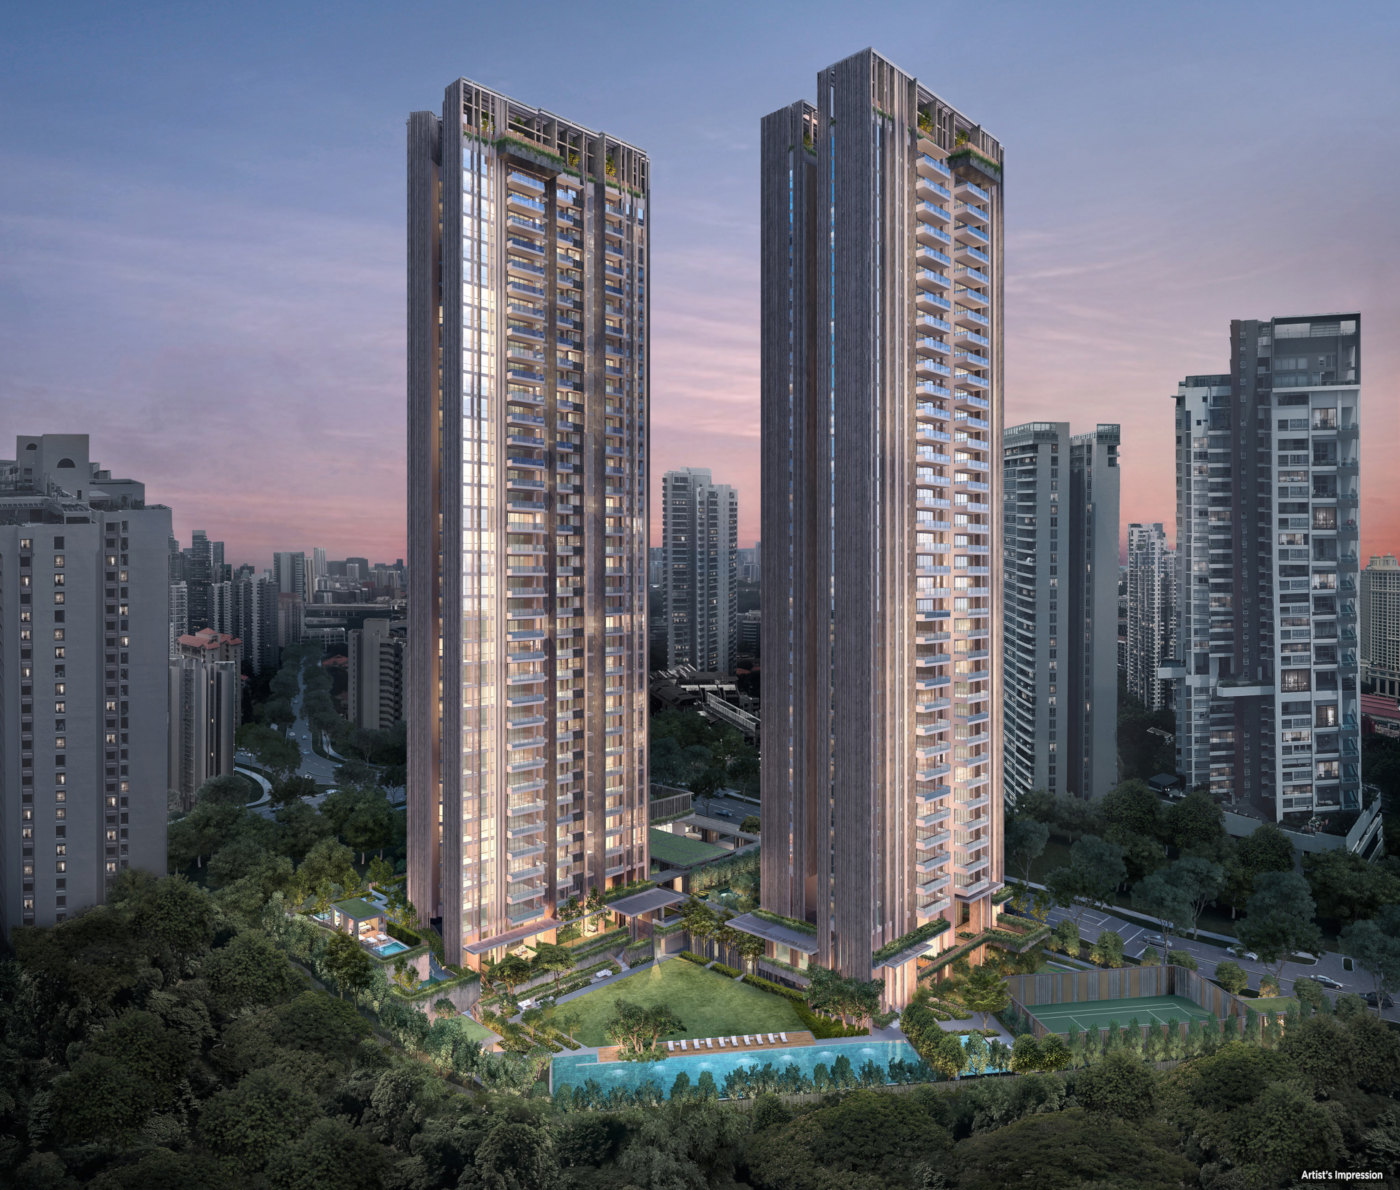 The Avenir River Valley Singapore